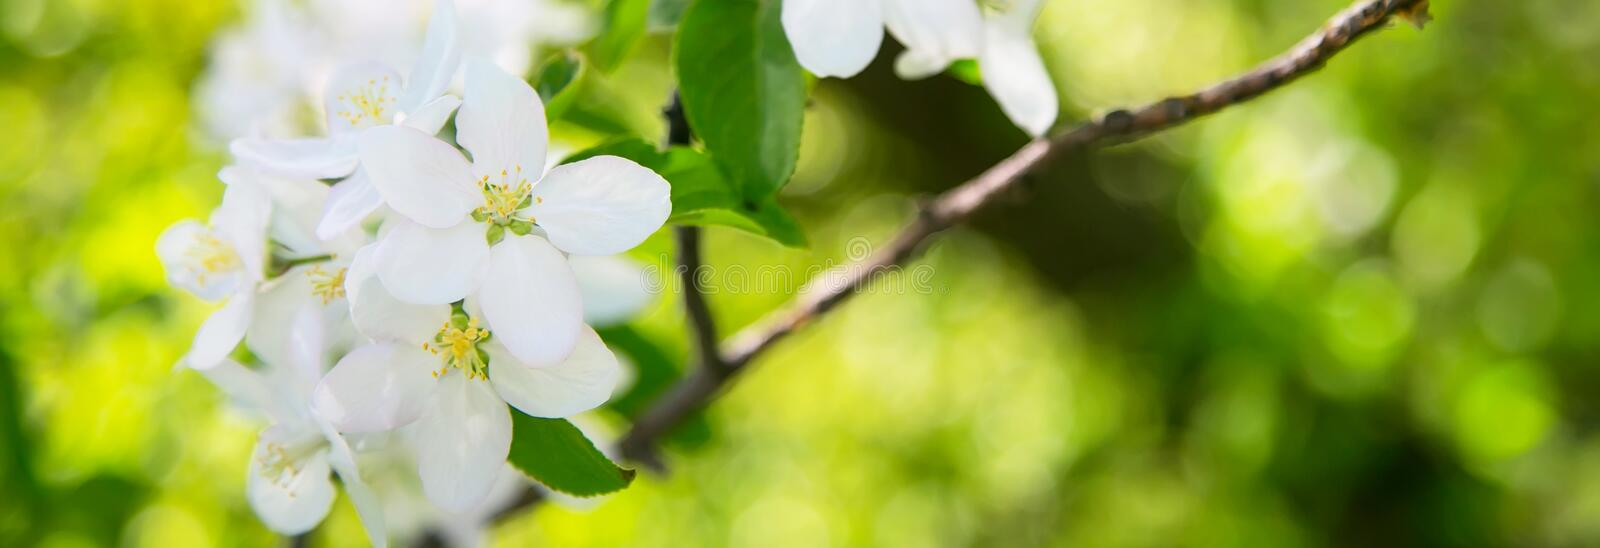 Apple blossom spring flowers. Apple blossom white flowers and green leafs spring banner background stock photos